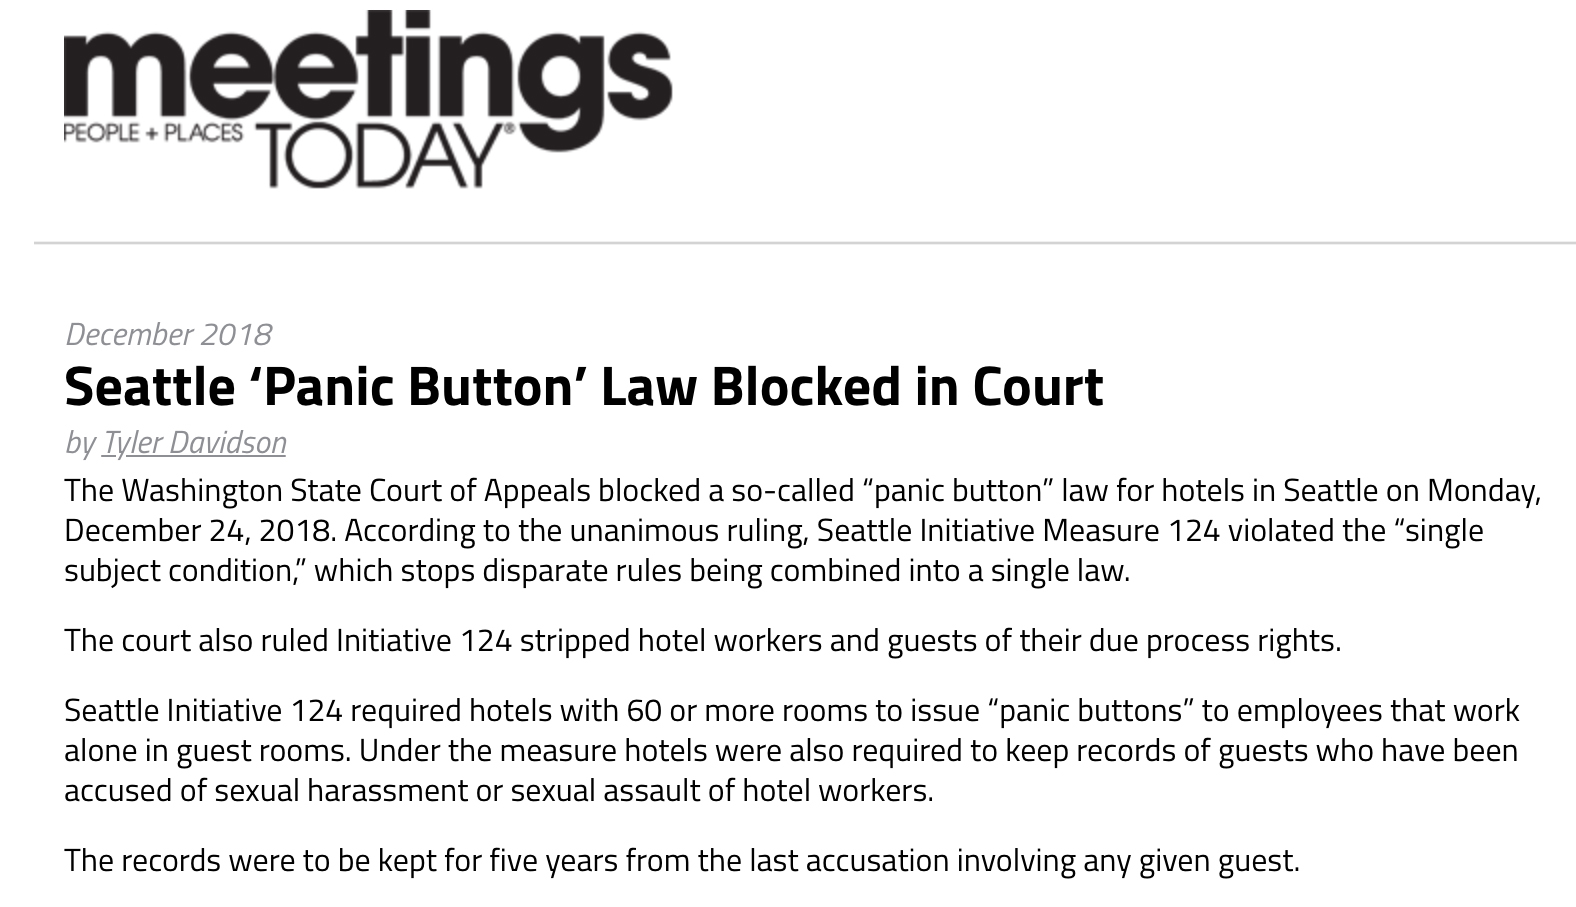 Seattle 'Panic Button' Law Blocked in Court.jpg